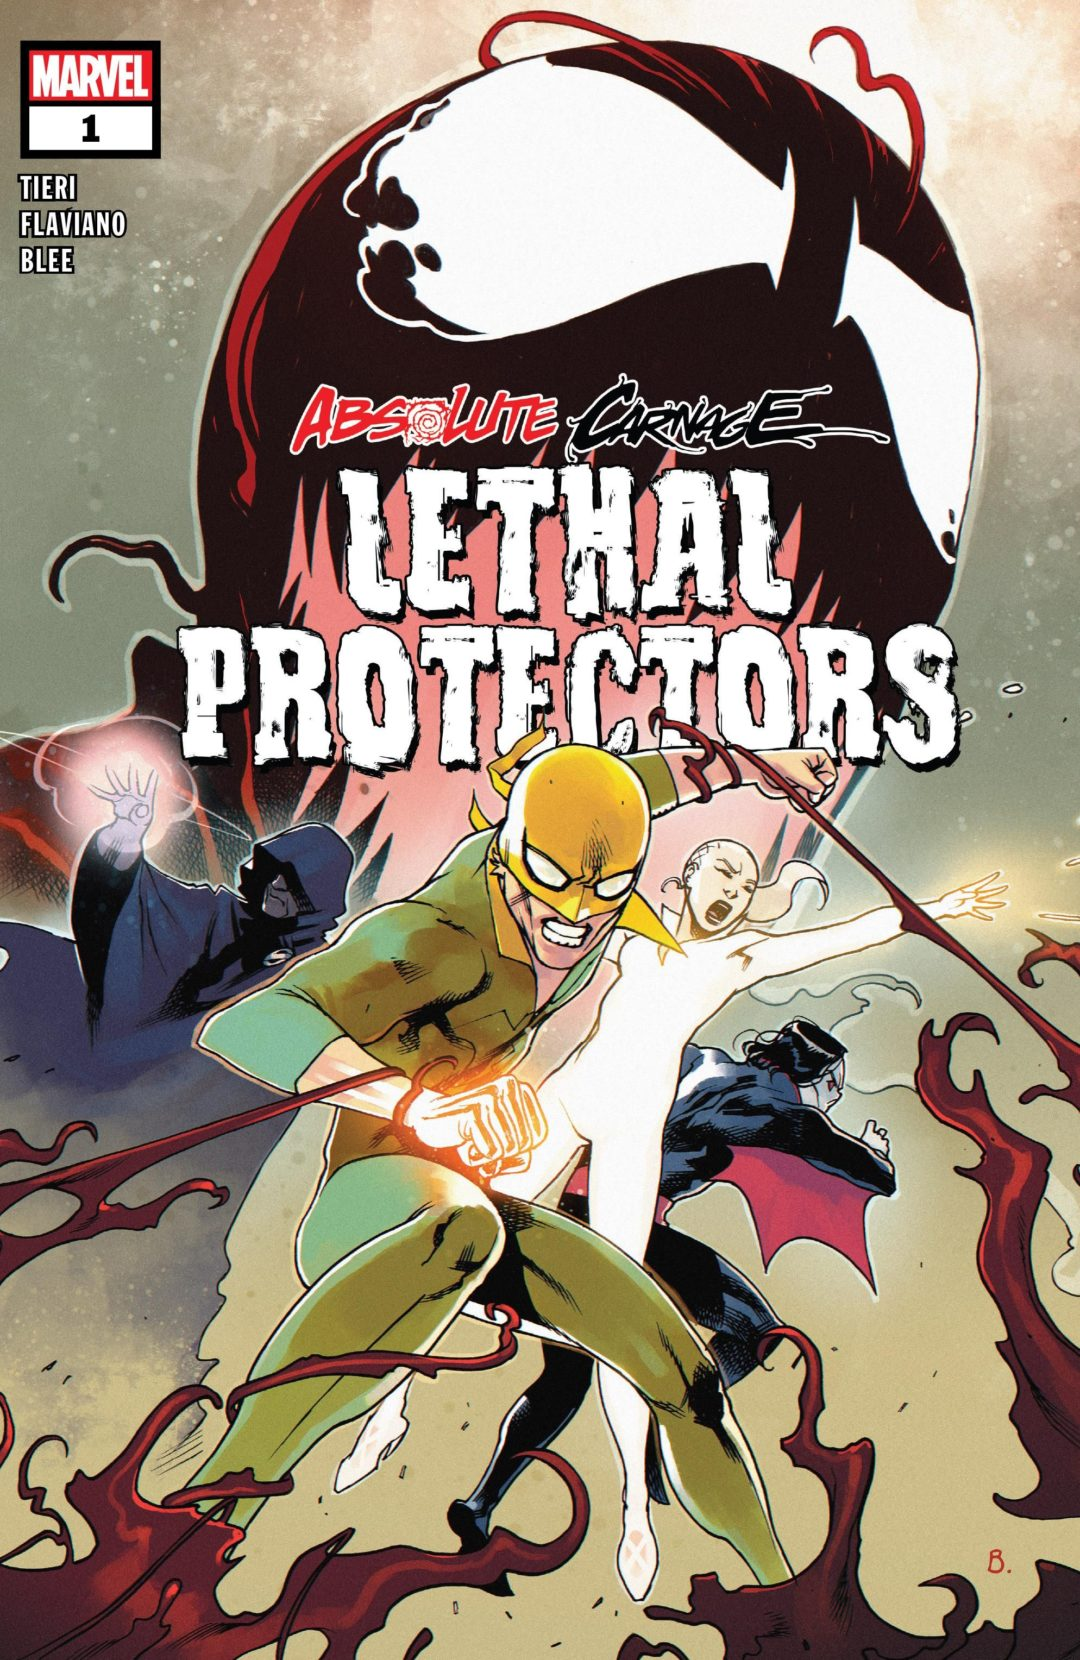 ABSOLUTE CARNAGE: LETHAL PROTECTORS #1 (2019) VF/NM MARVEL